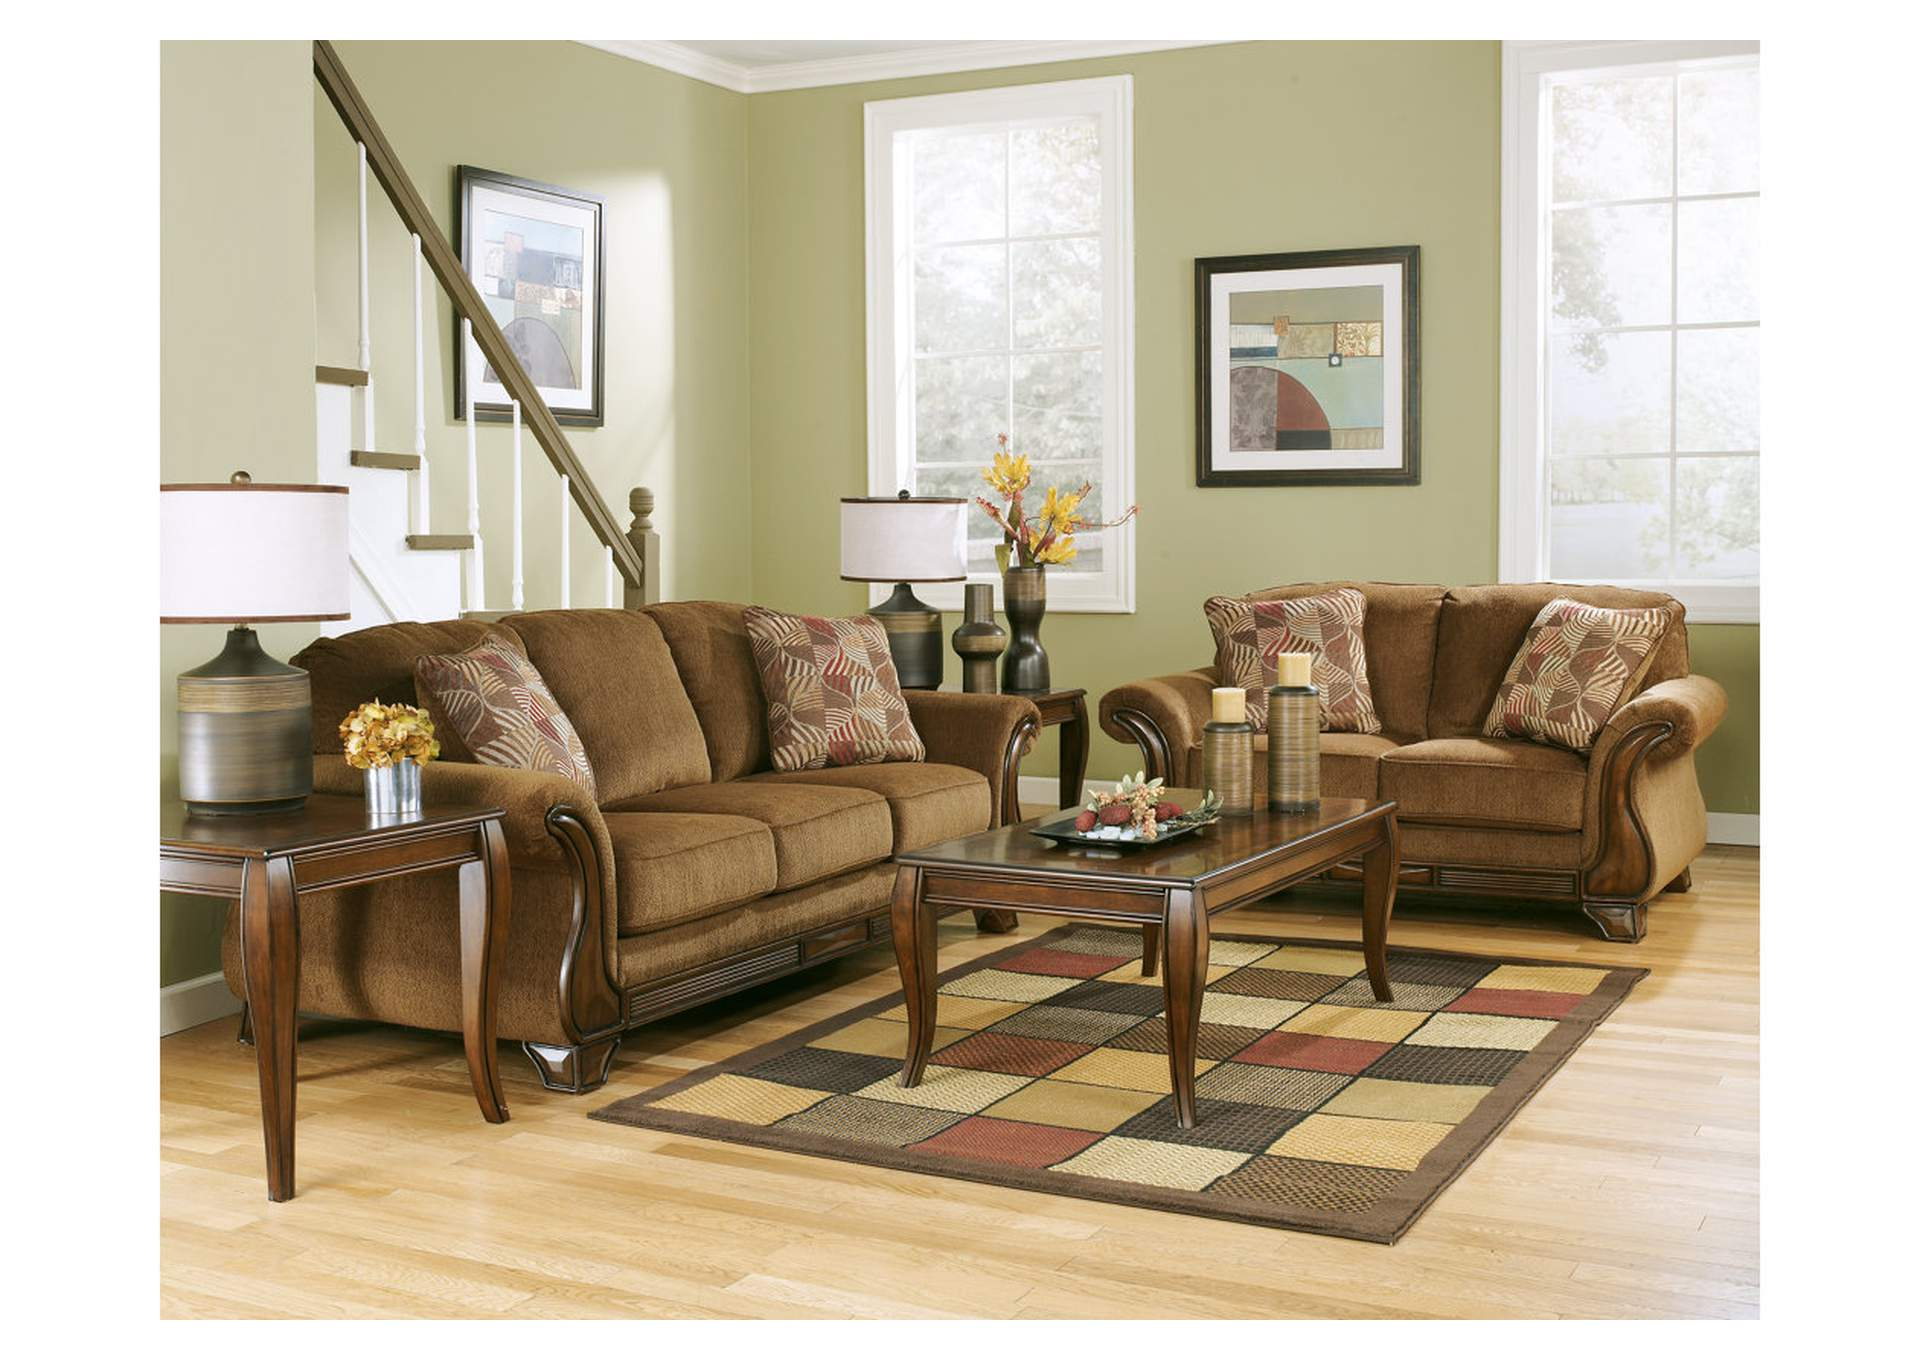 sofa and more harveys brown leather corner bay star consignments montgomery mocha loveseat signature design by ashley